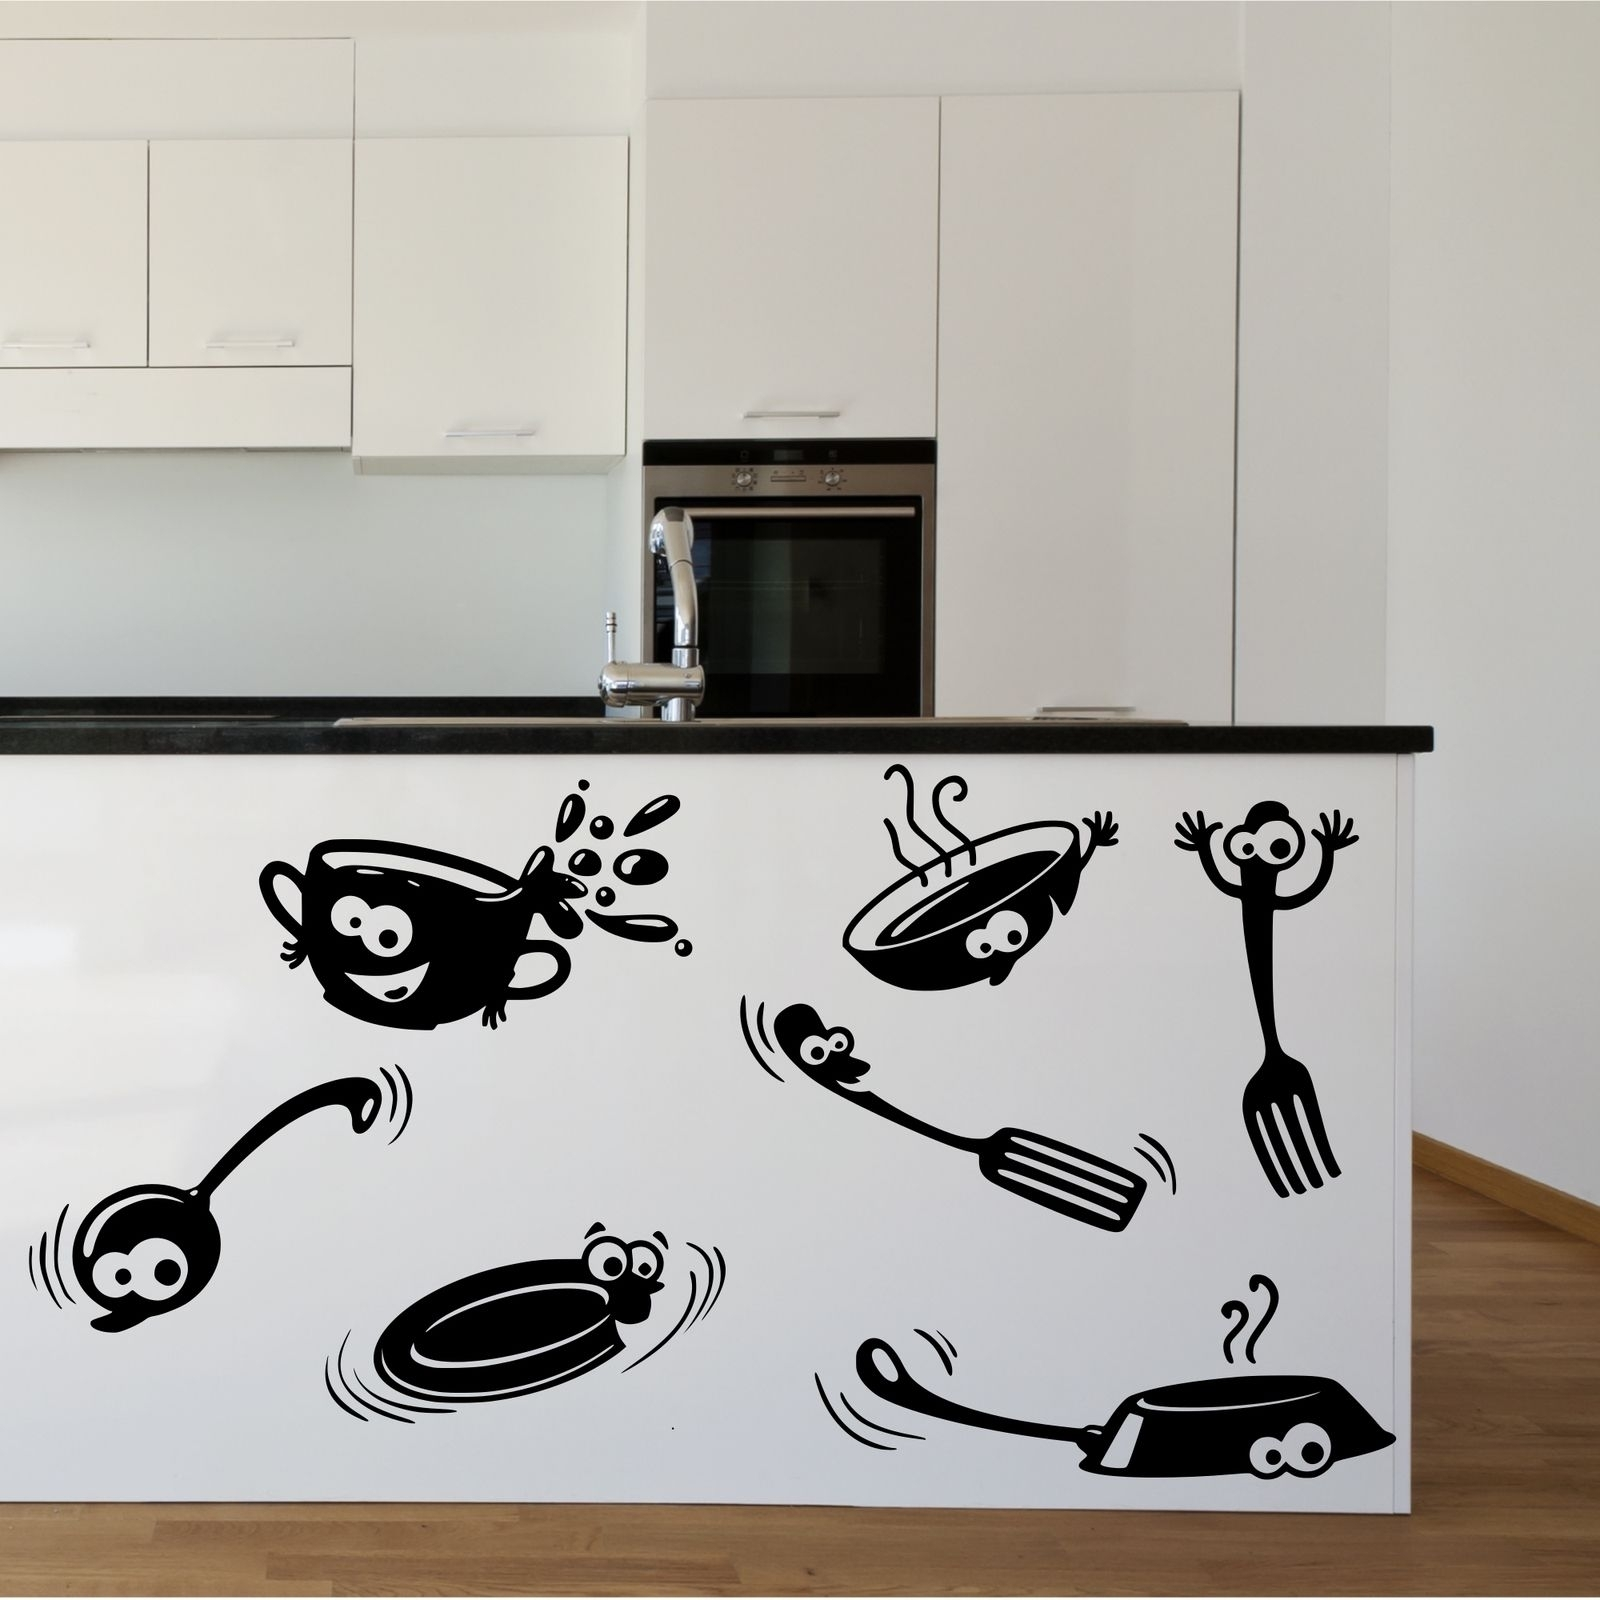 Kitchen Cupboard Cartoon Stickers Vinyl Wall Art Decal Transfer Inside Latest Stencil Wall Art (View 12 of 20)